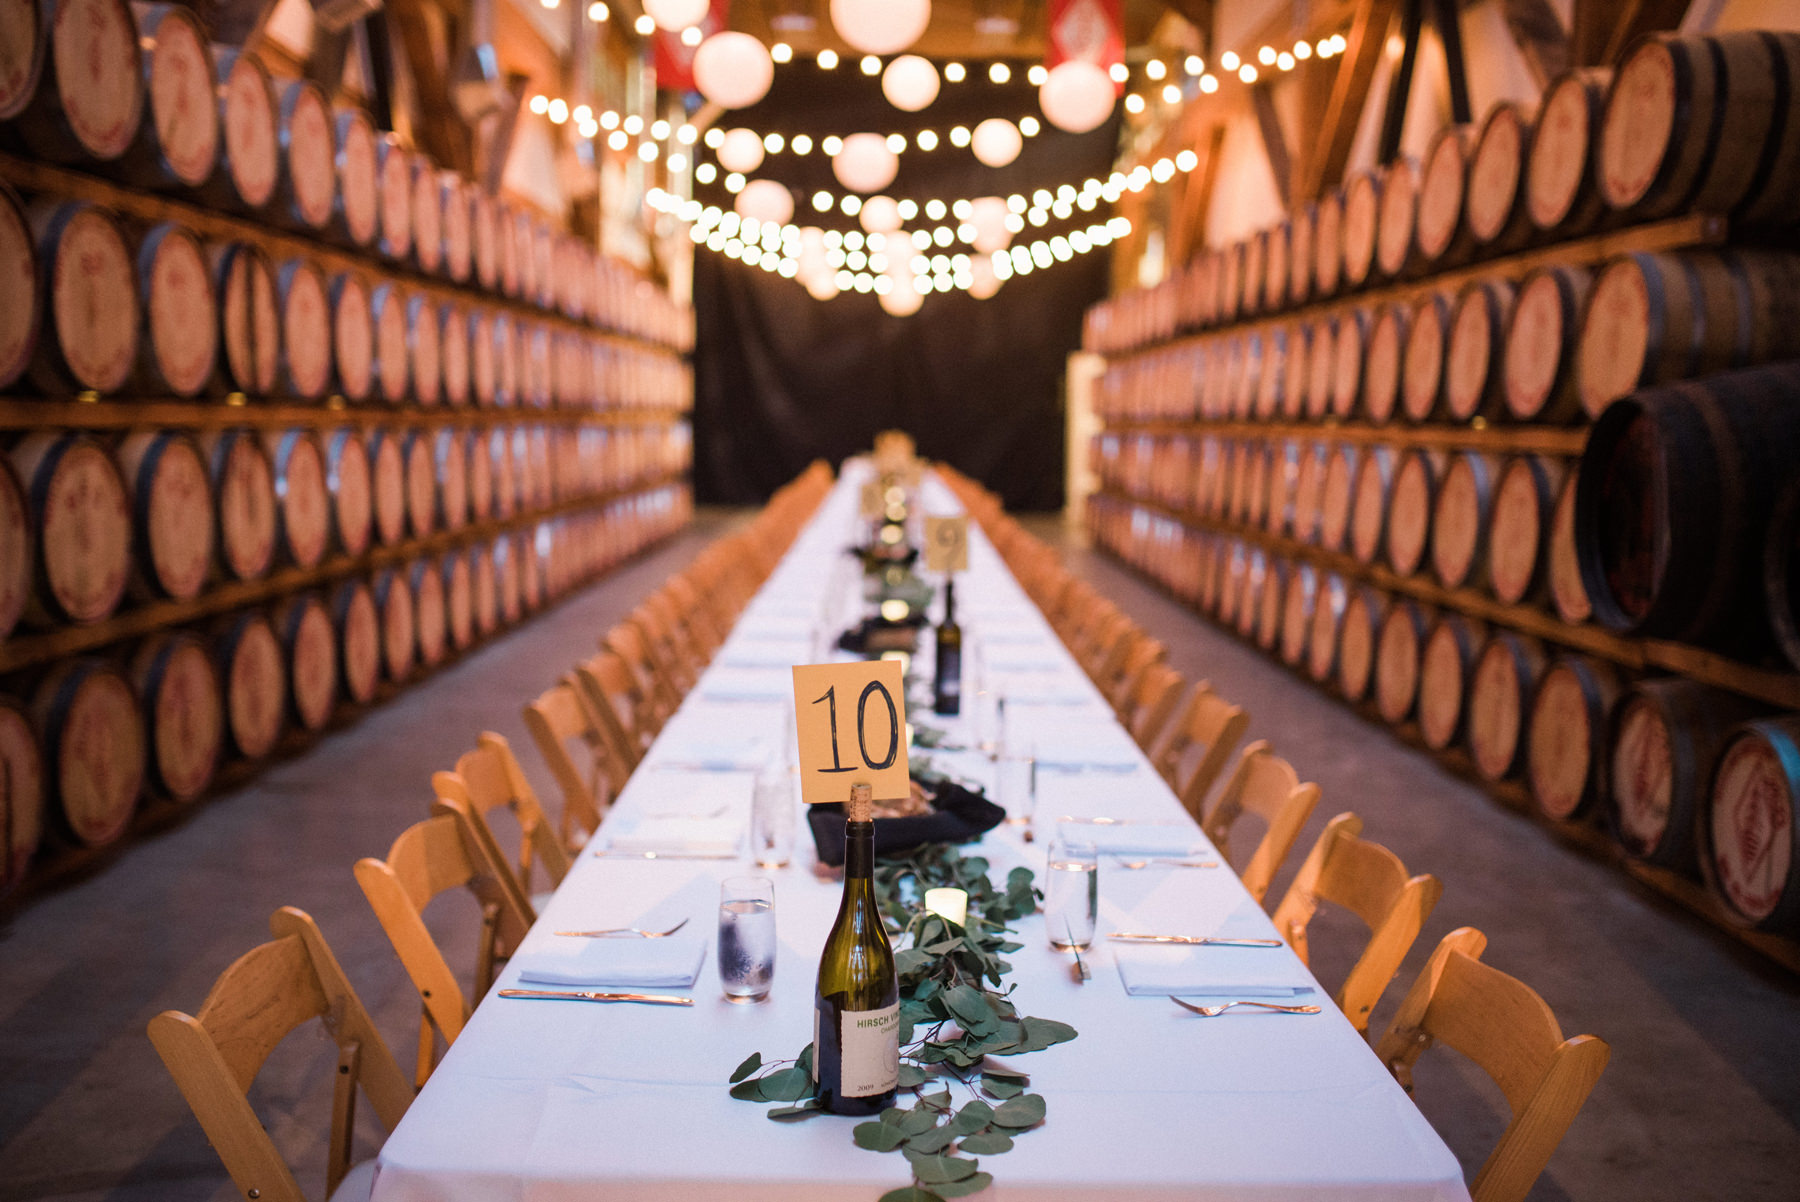 065-long-table-wedding-dinner-under-string-lights-at-westland-distillery.jpg